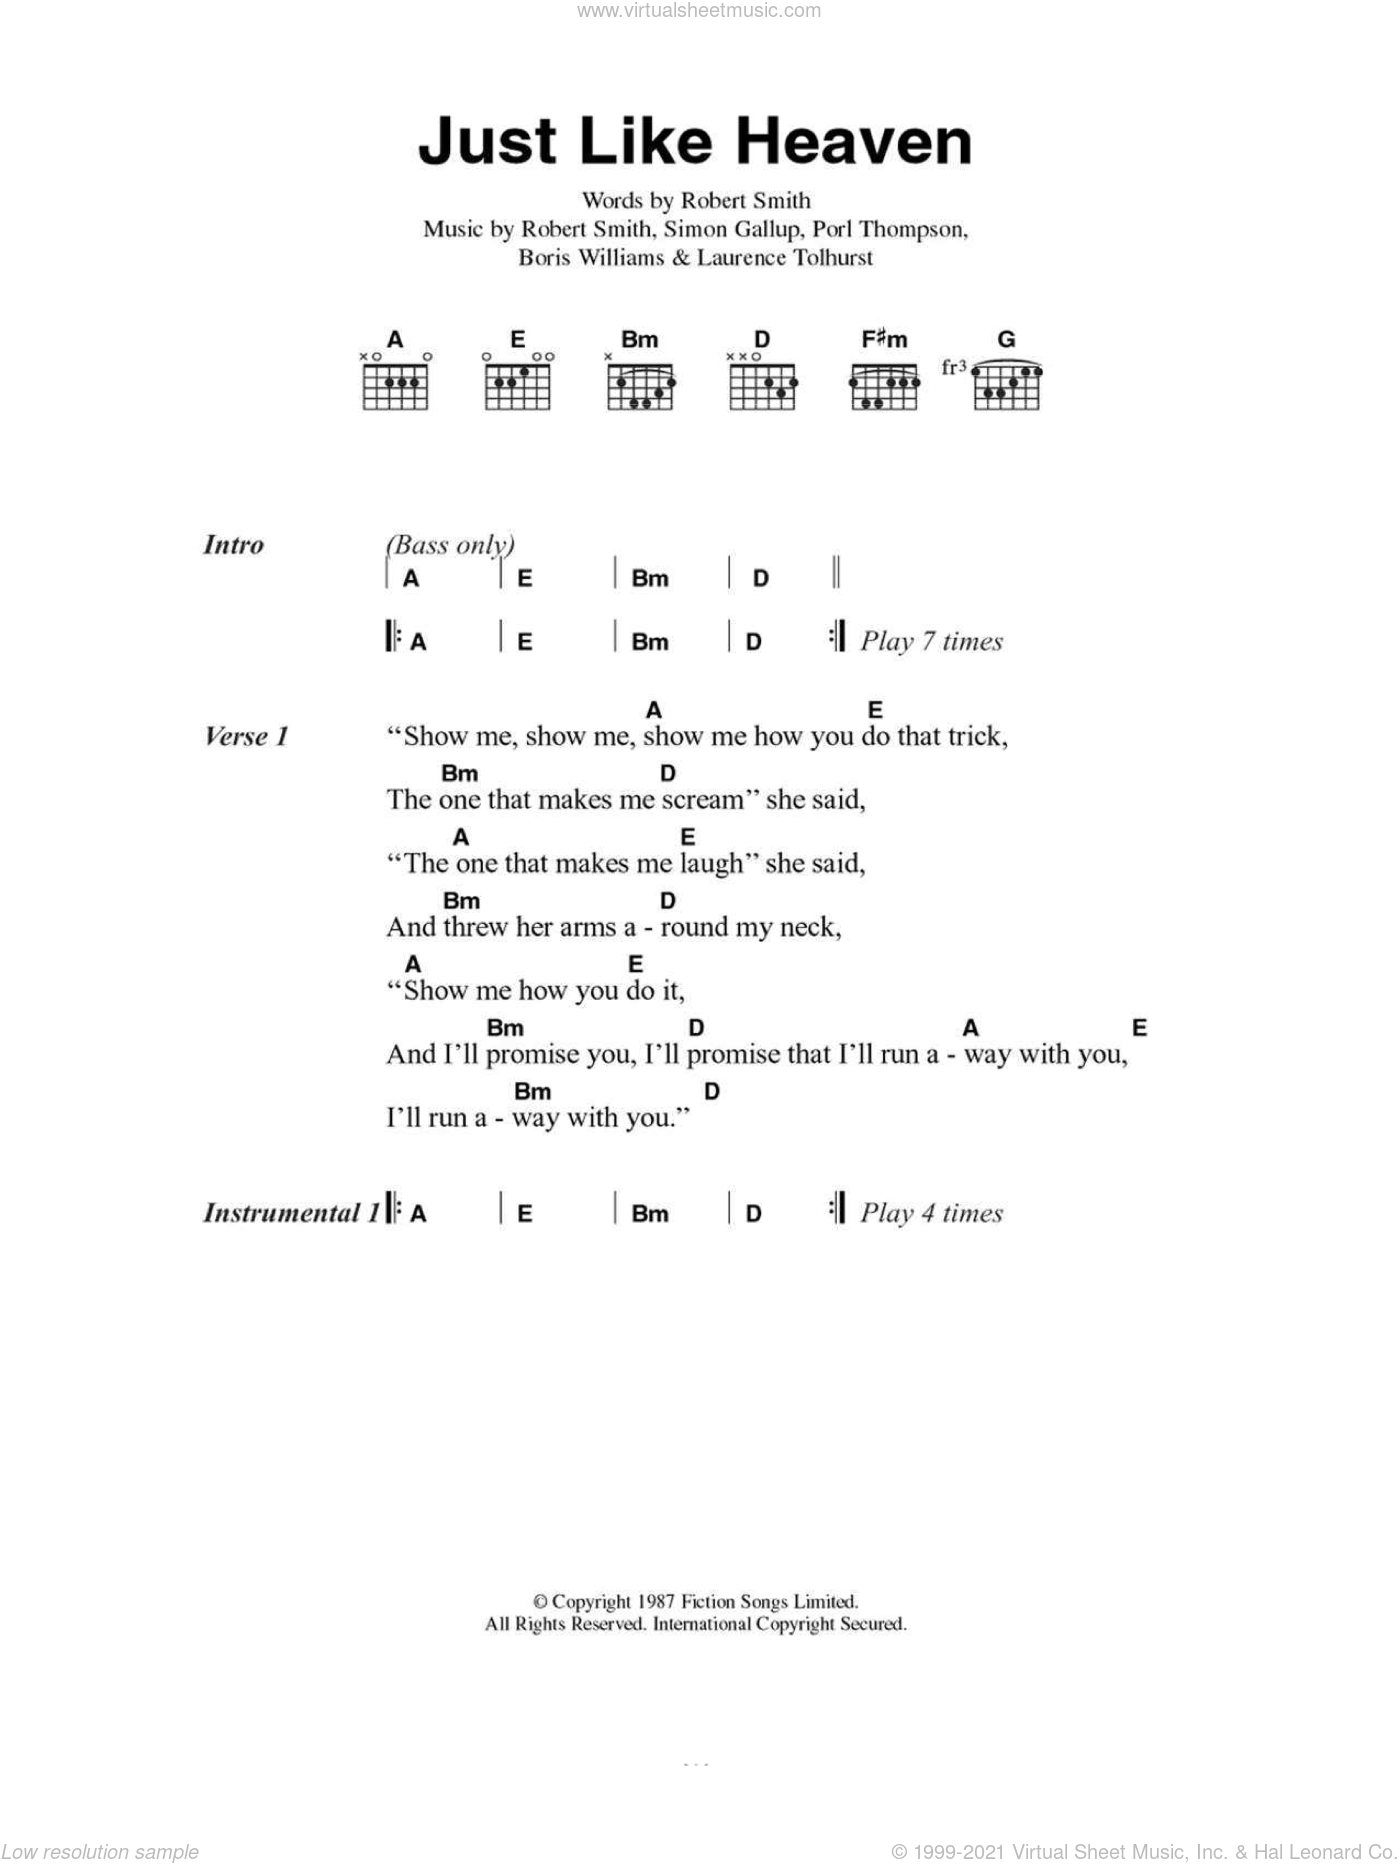 Just Like Heaven sheet music for guitar (chords) by Simon Gallup